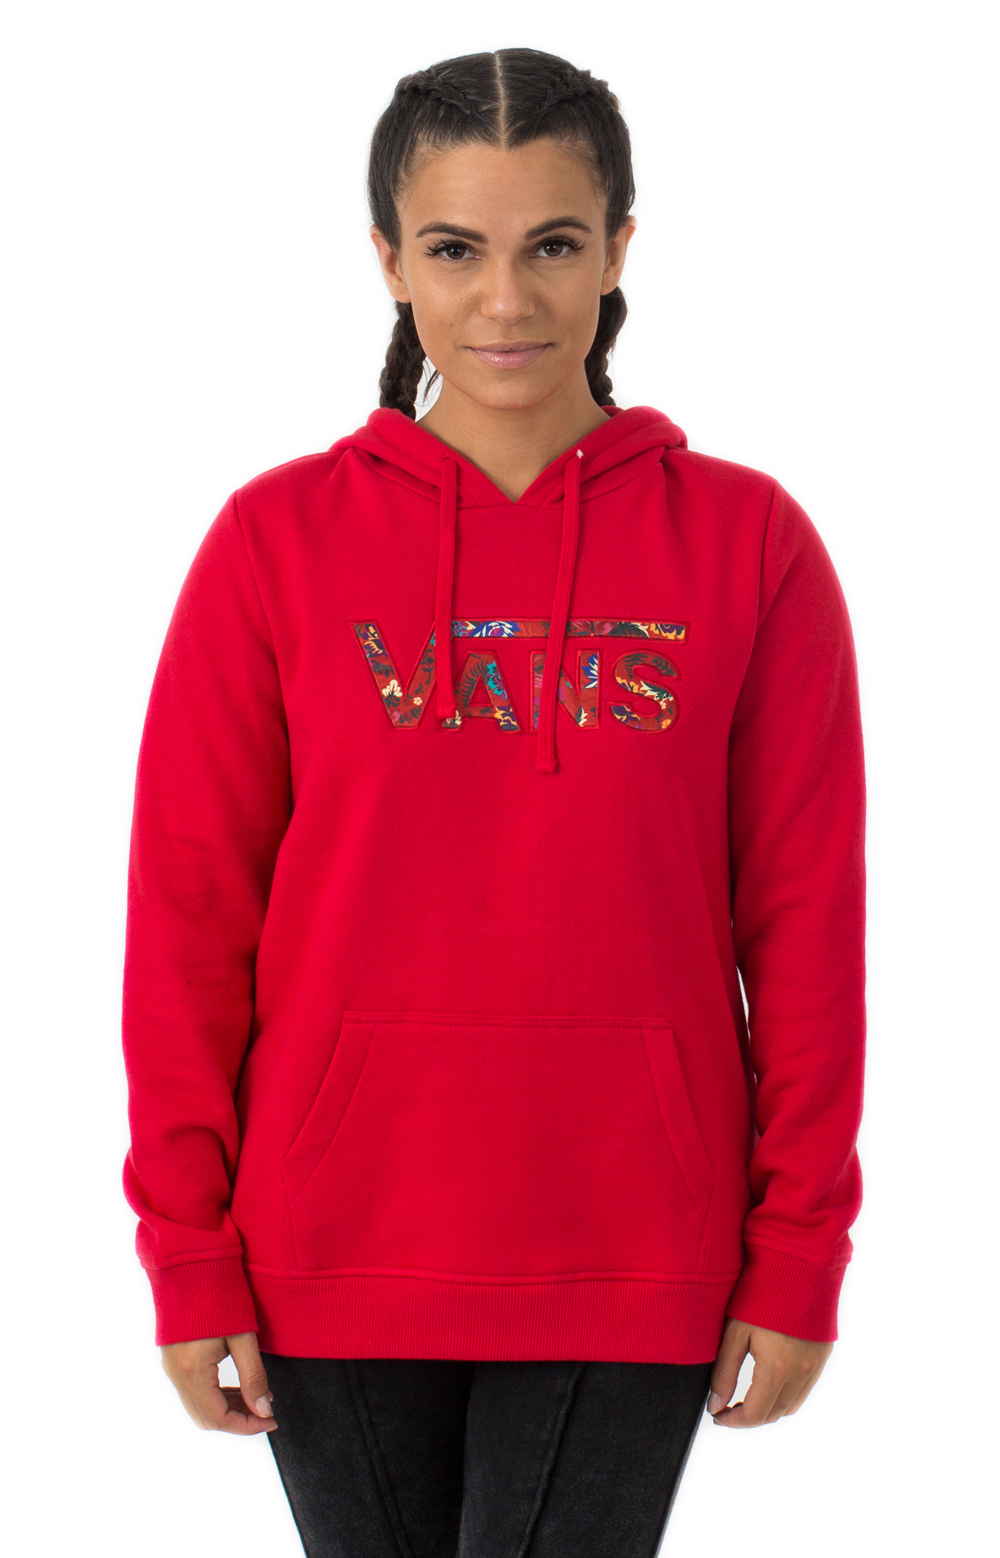 Outshine Pullover Hoodie - Racing Red